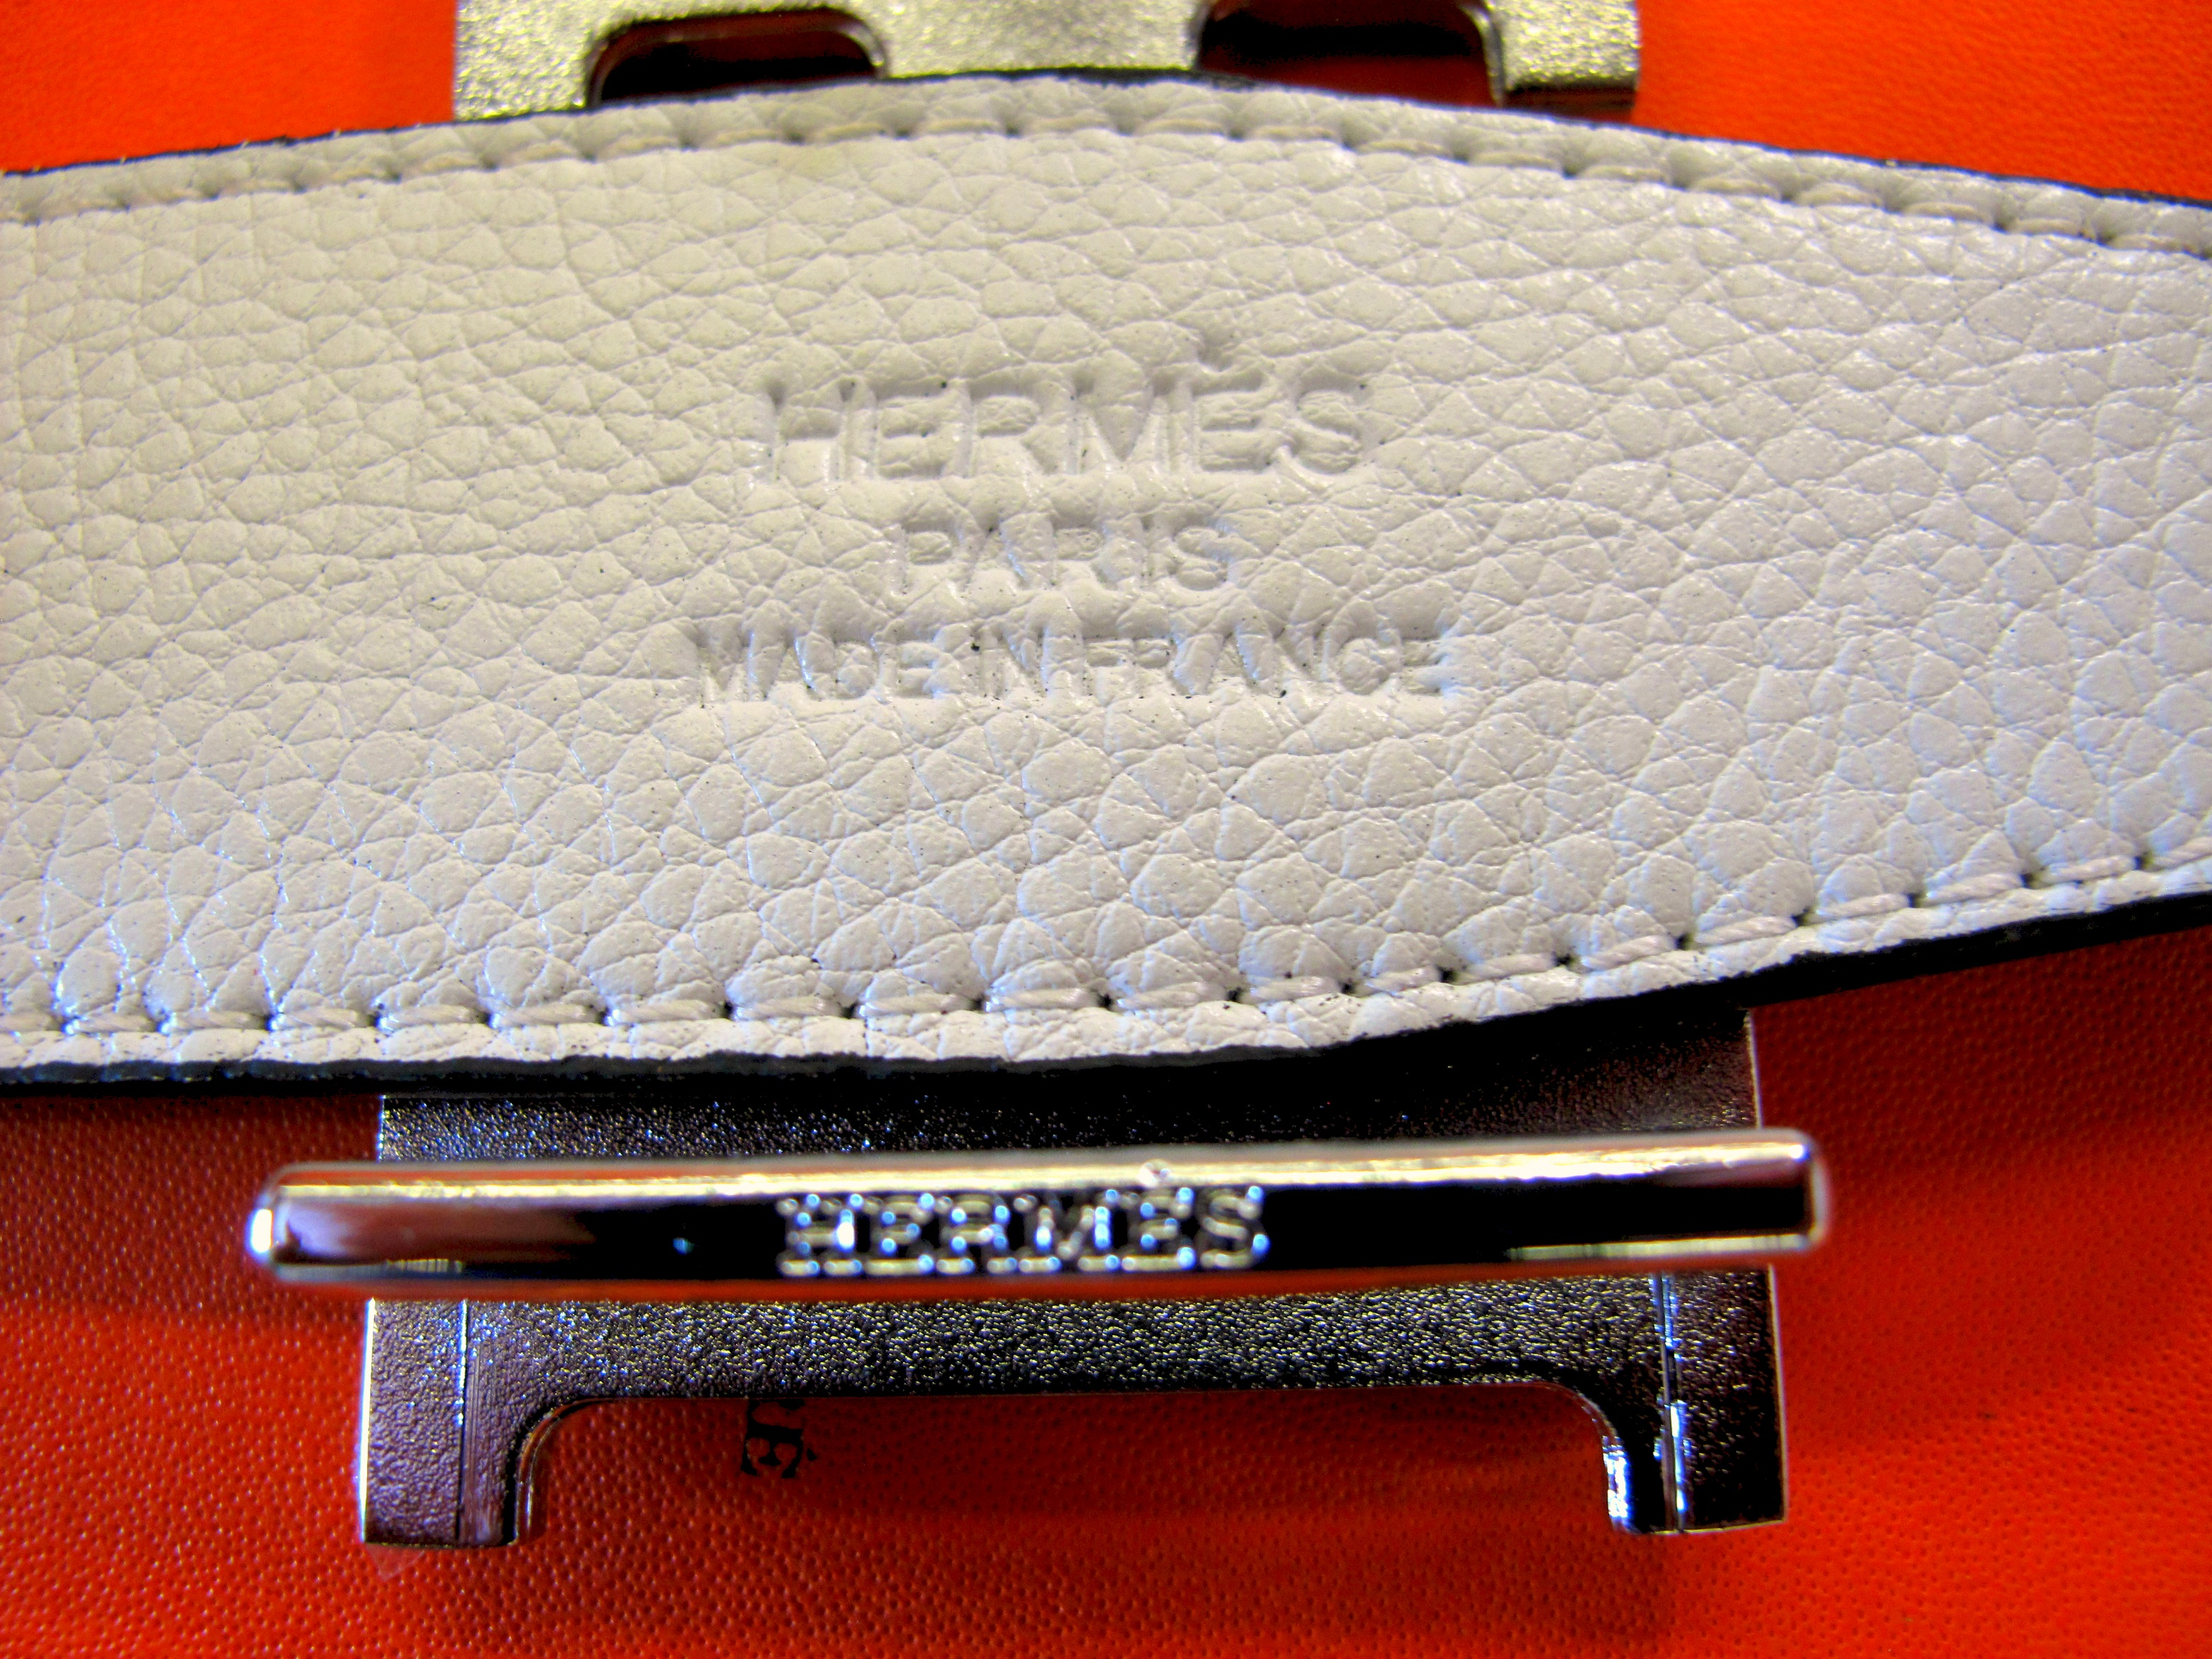 hermes birkin bag replica - $3.2 Million in Fake Hermes Belts Seized at the L.A. Port